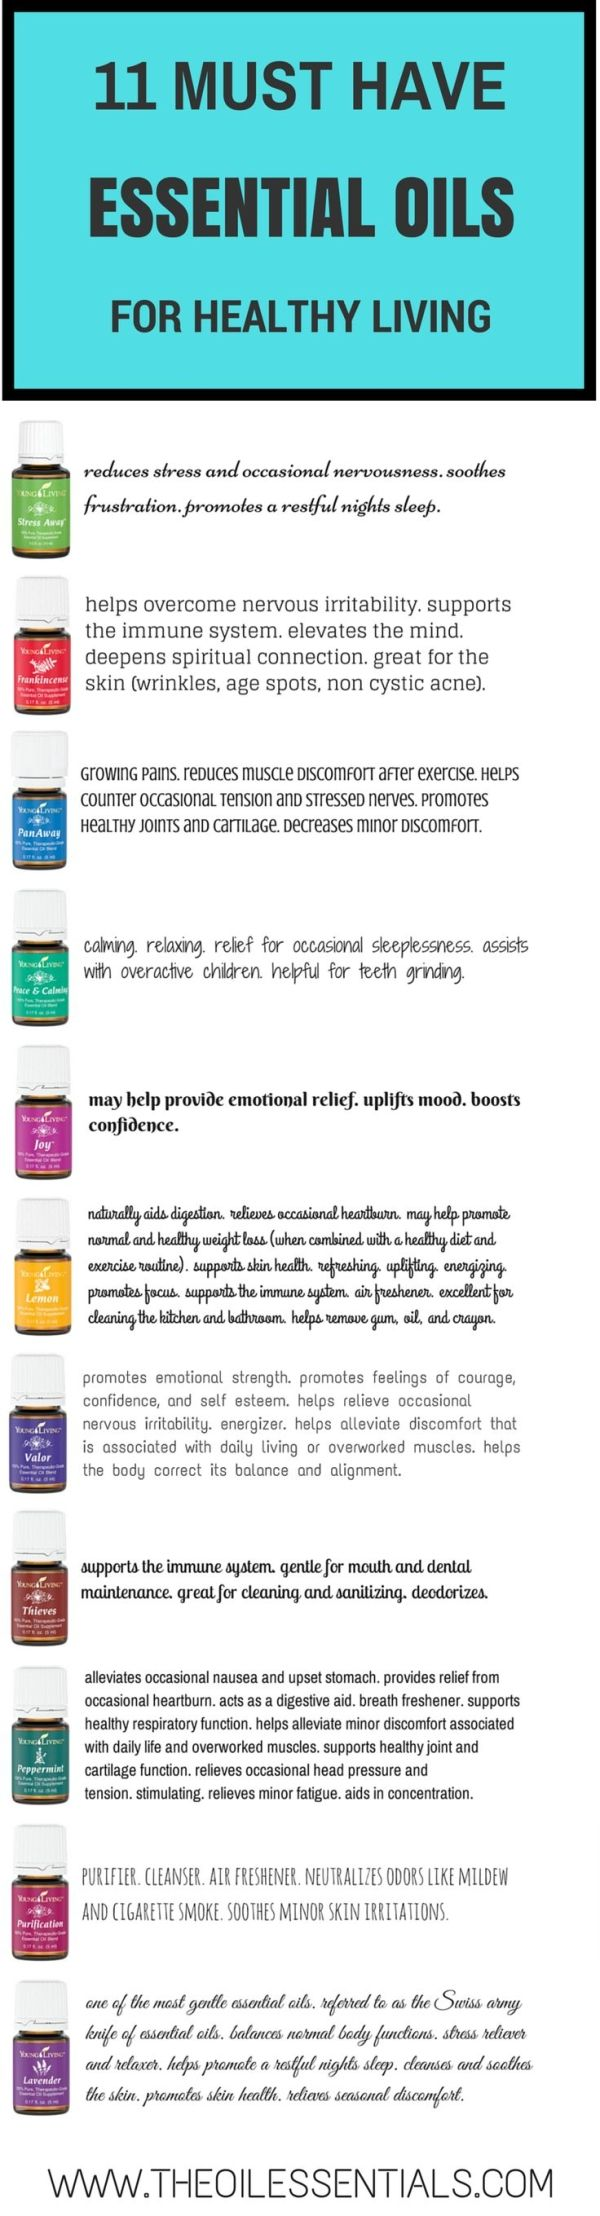 11 Must Have Essential Oils | The Oil Essentials | How-Tos of Young Living Essential Oils by berta